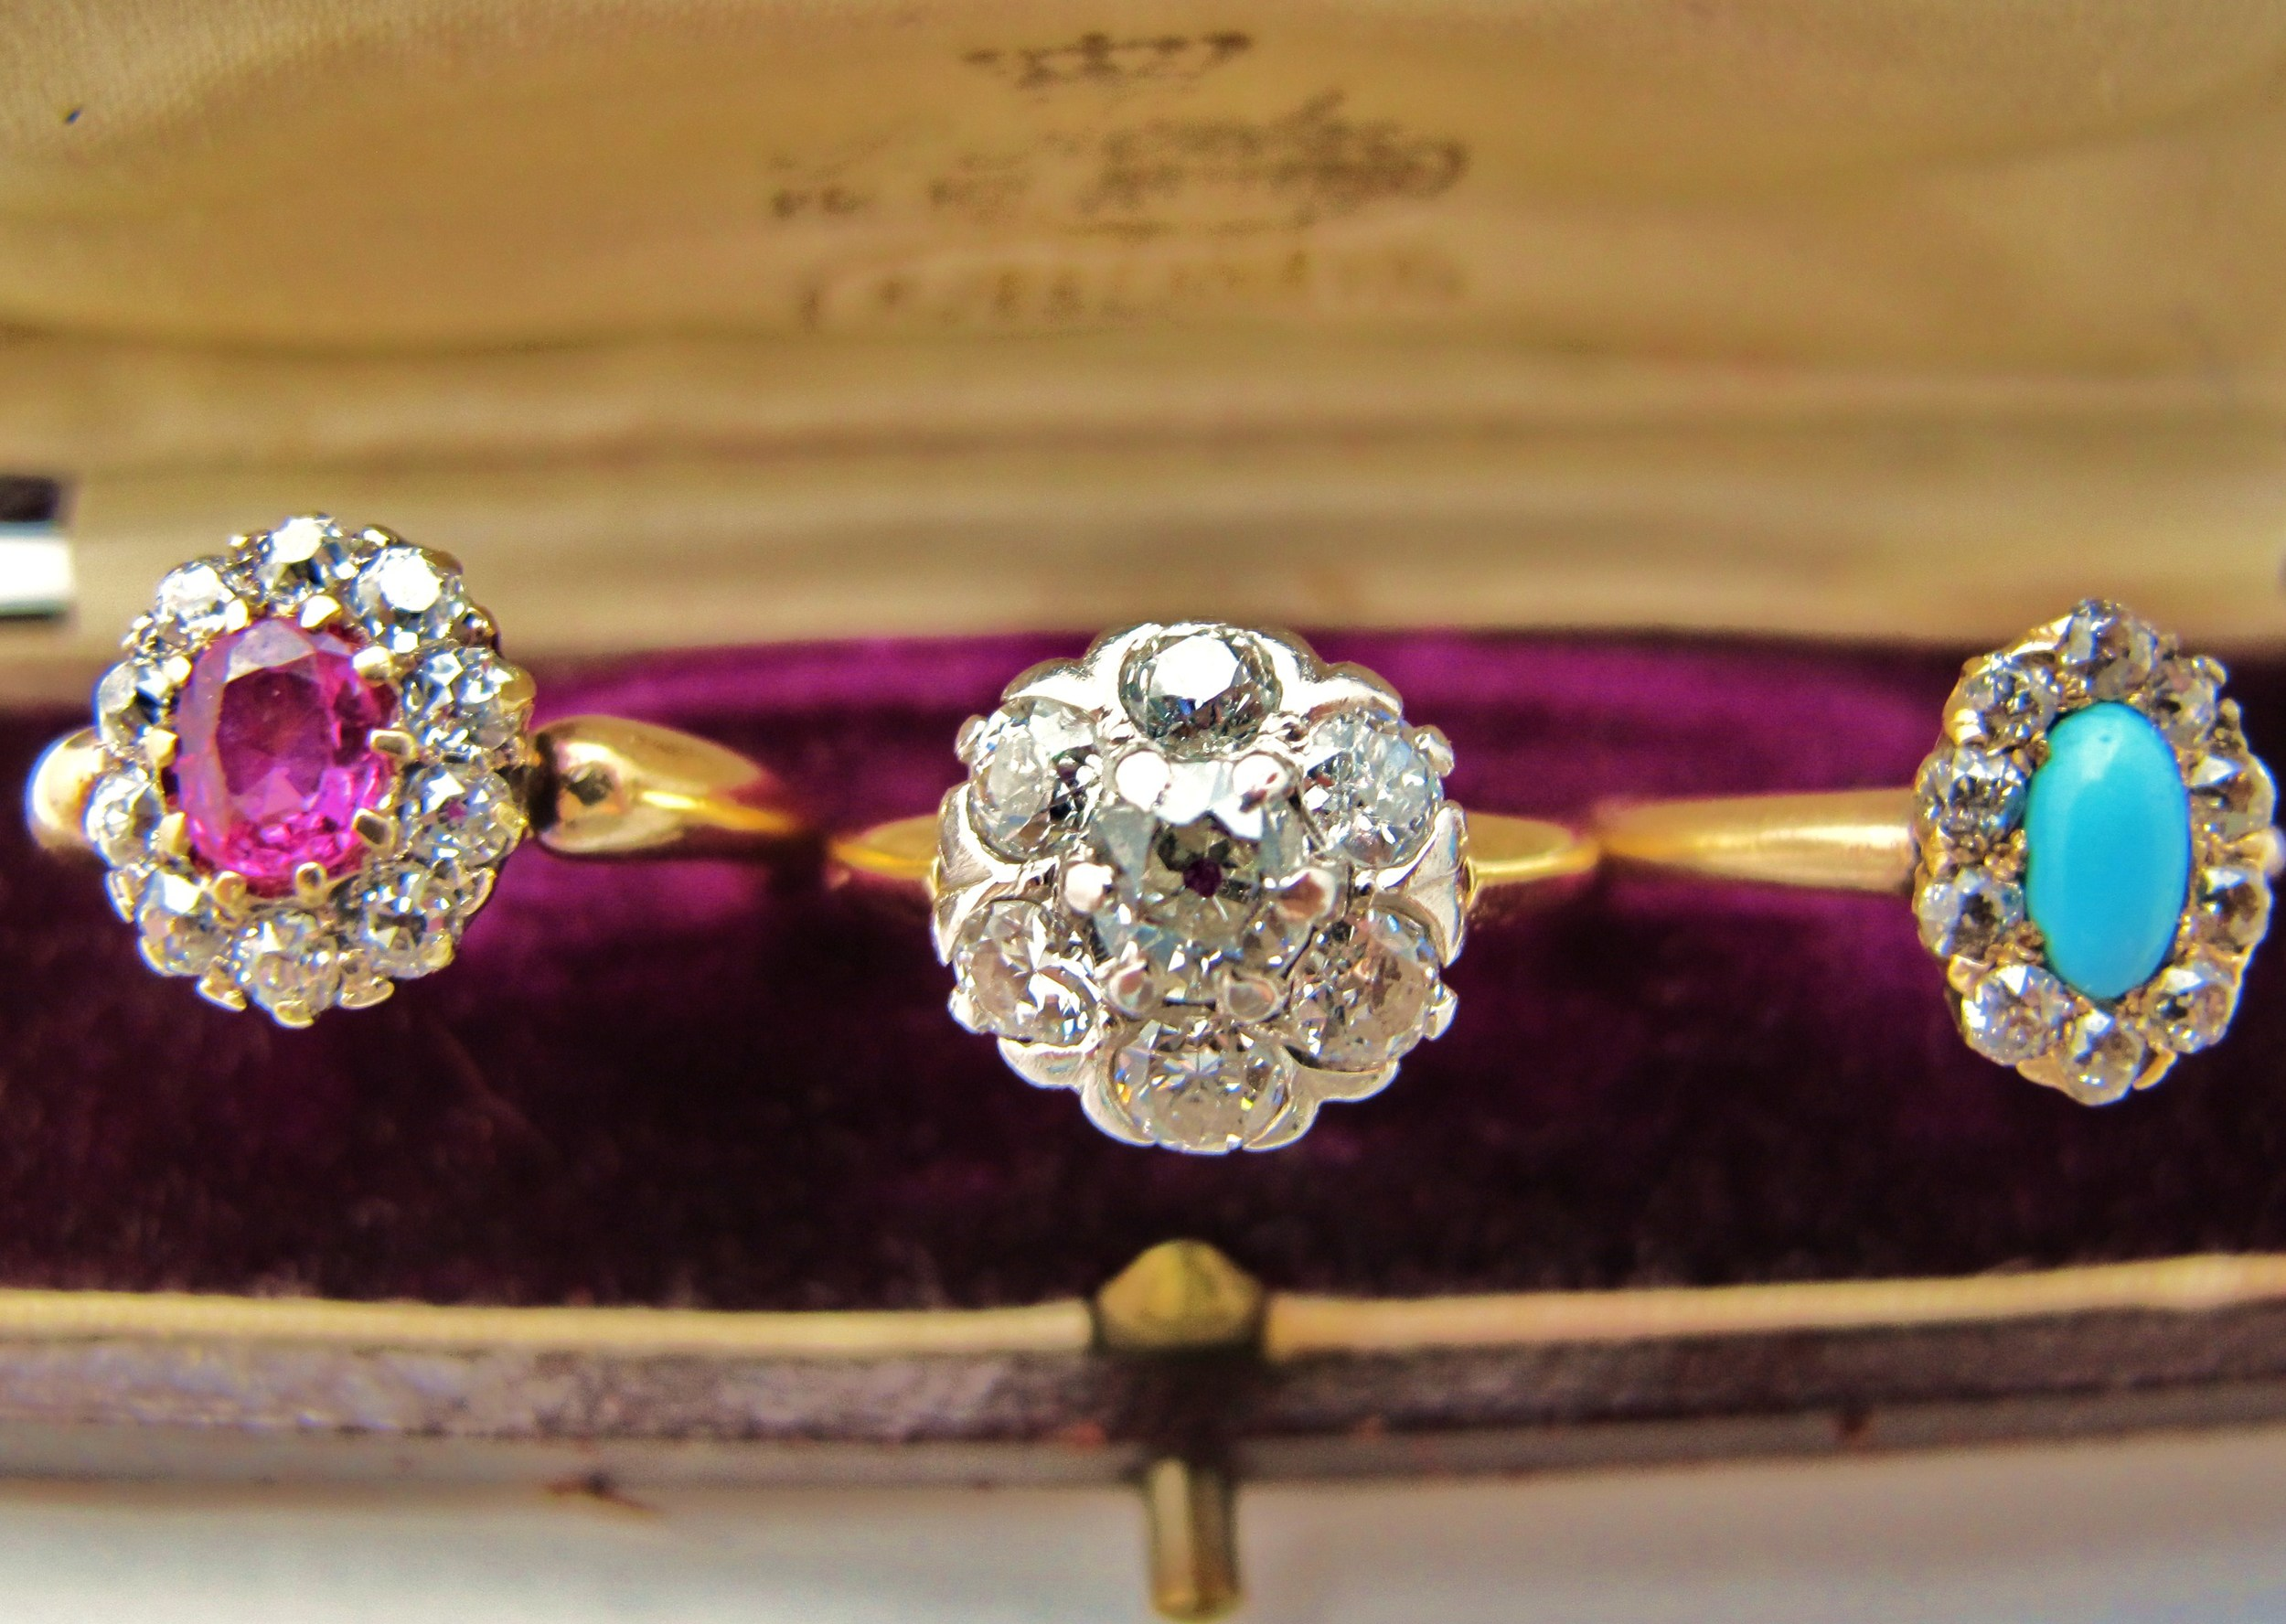 From Right to Left: 18k yellow gold with .56ct ruby and old European diamond surround, 14k yellow gold/platinum with 1.4cts of old European cut diamonds, 14k yellow gold with Persian turquoise cabochon and old European cut diamond surround.